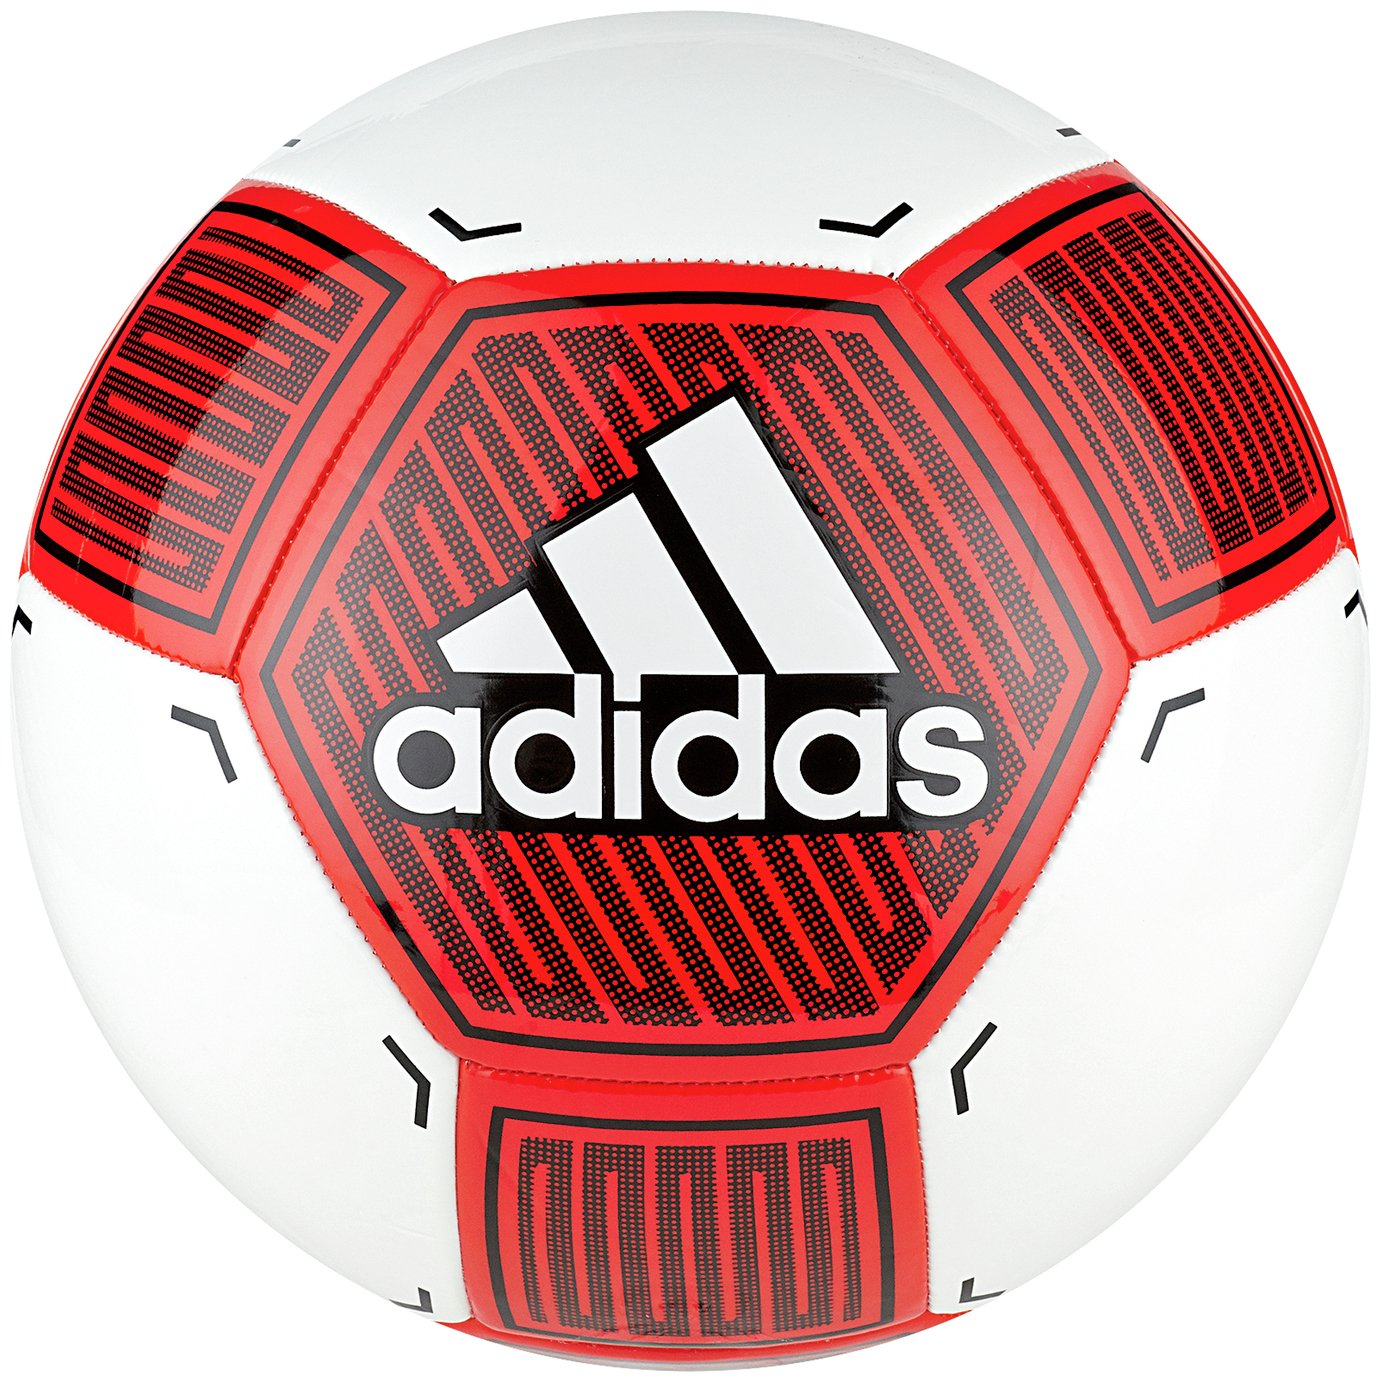 Adidas Starlancer VI Size 5 Football - Red and White